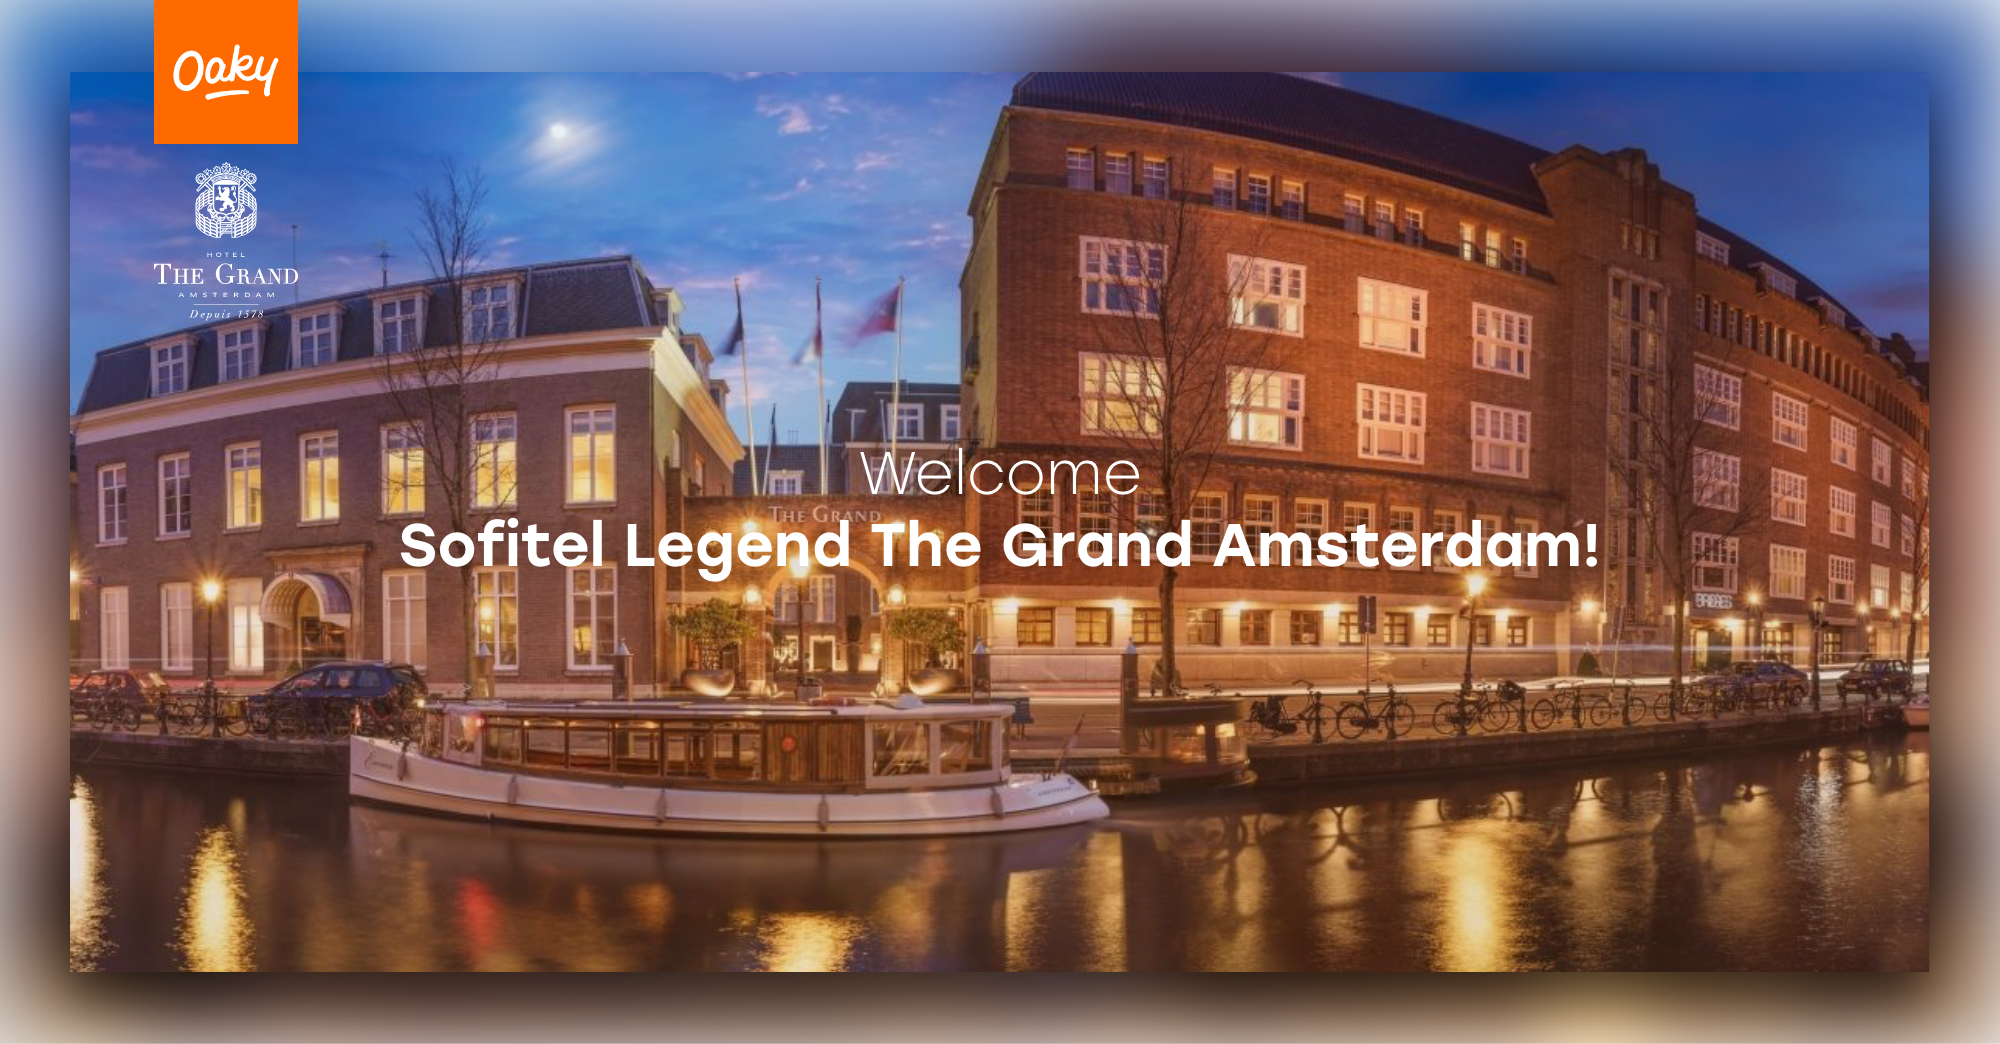 Oaky welcomes Sofitel the Grand Amsterdam